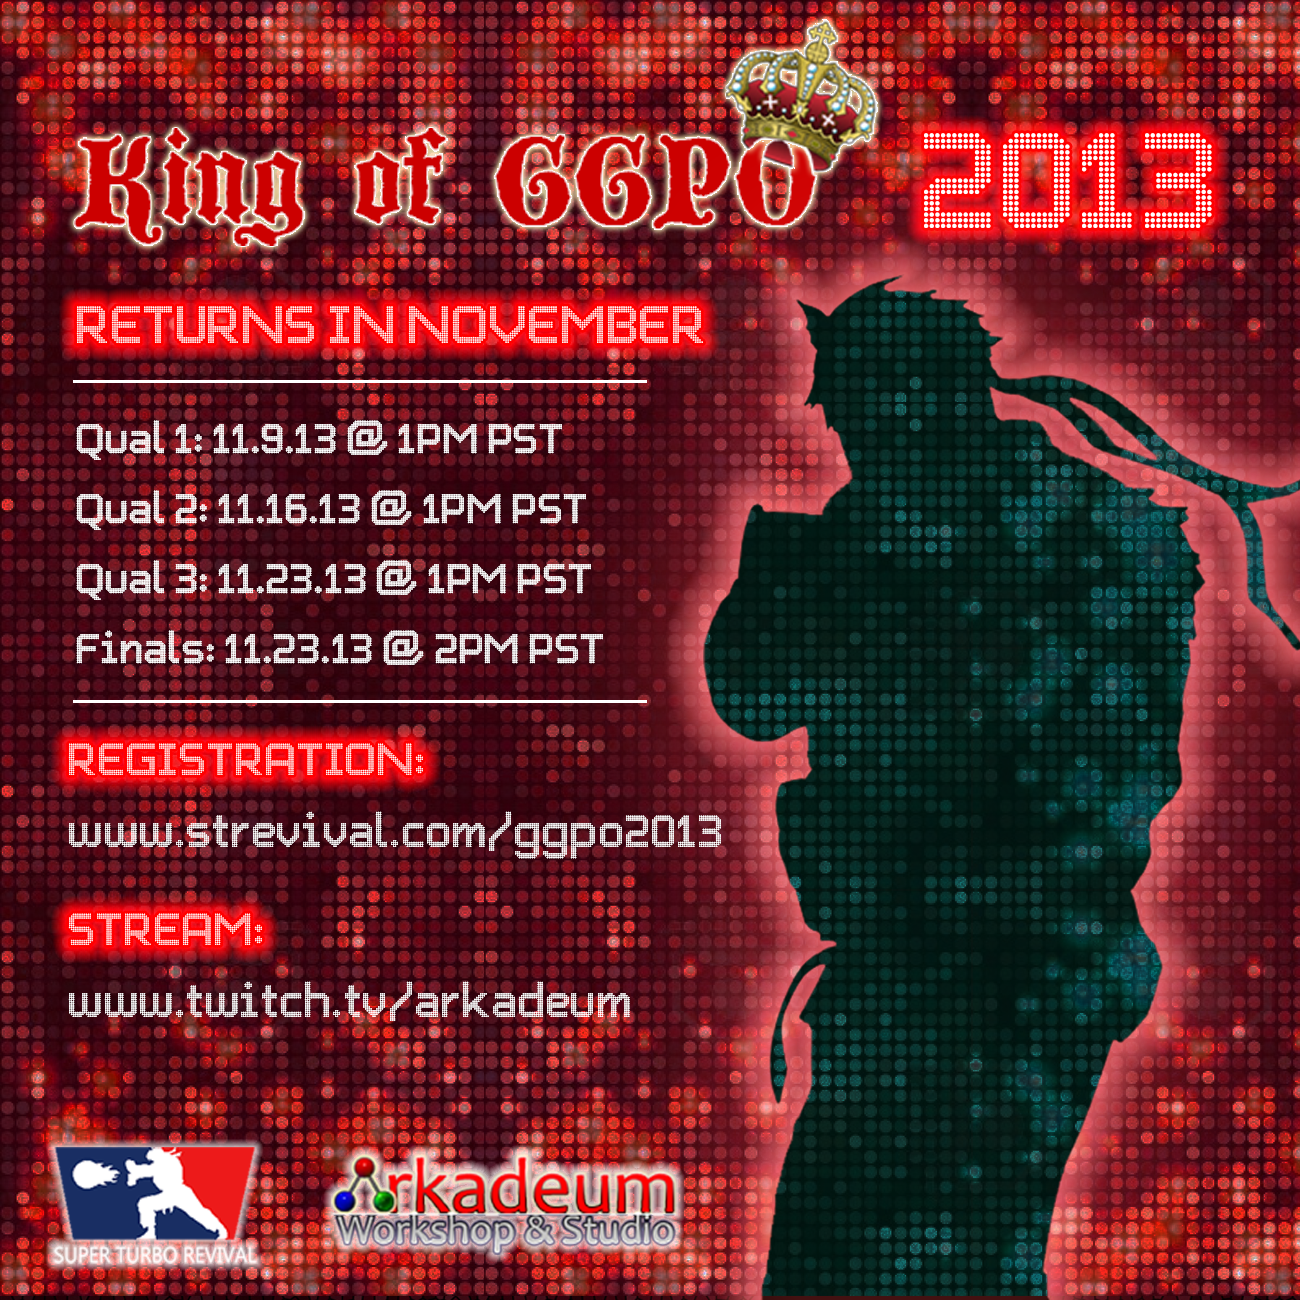 king_of_ggpo_2013_banner.png